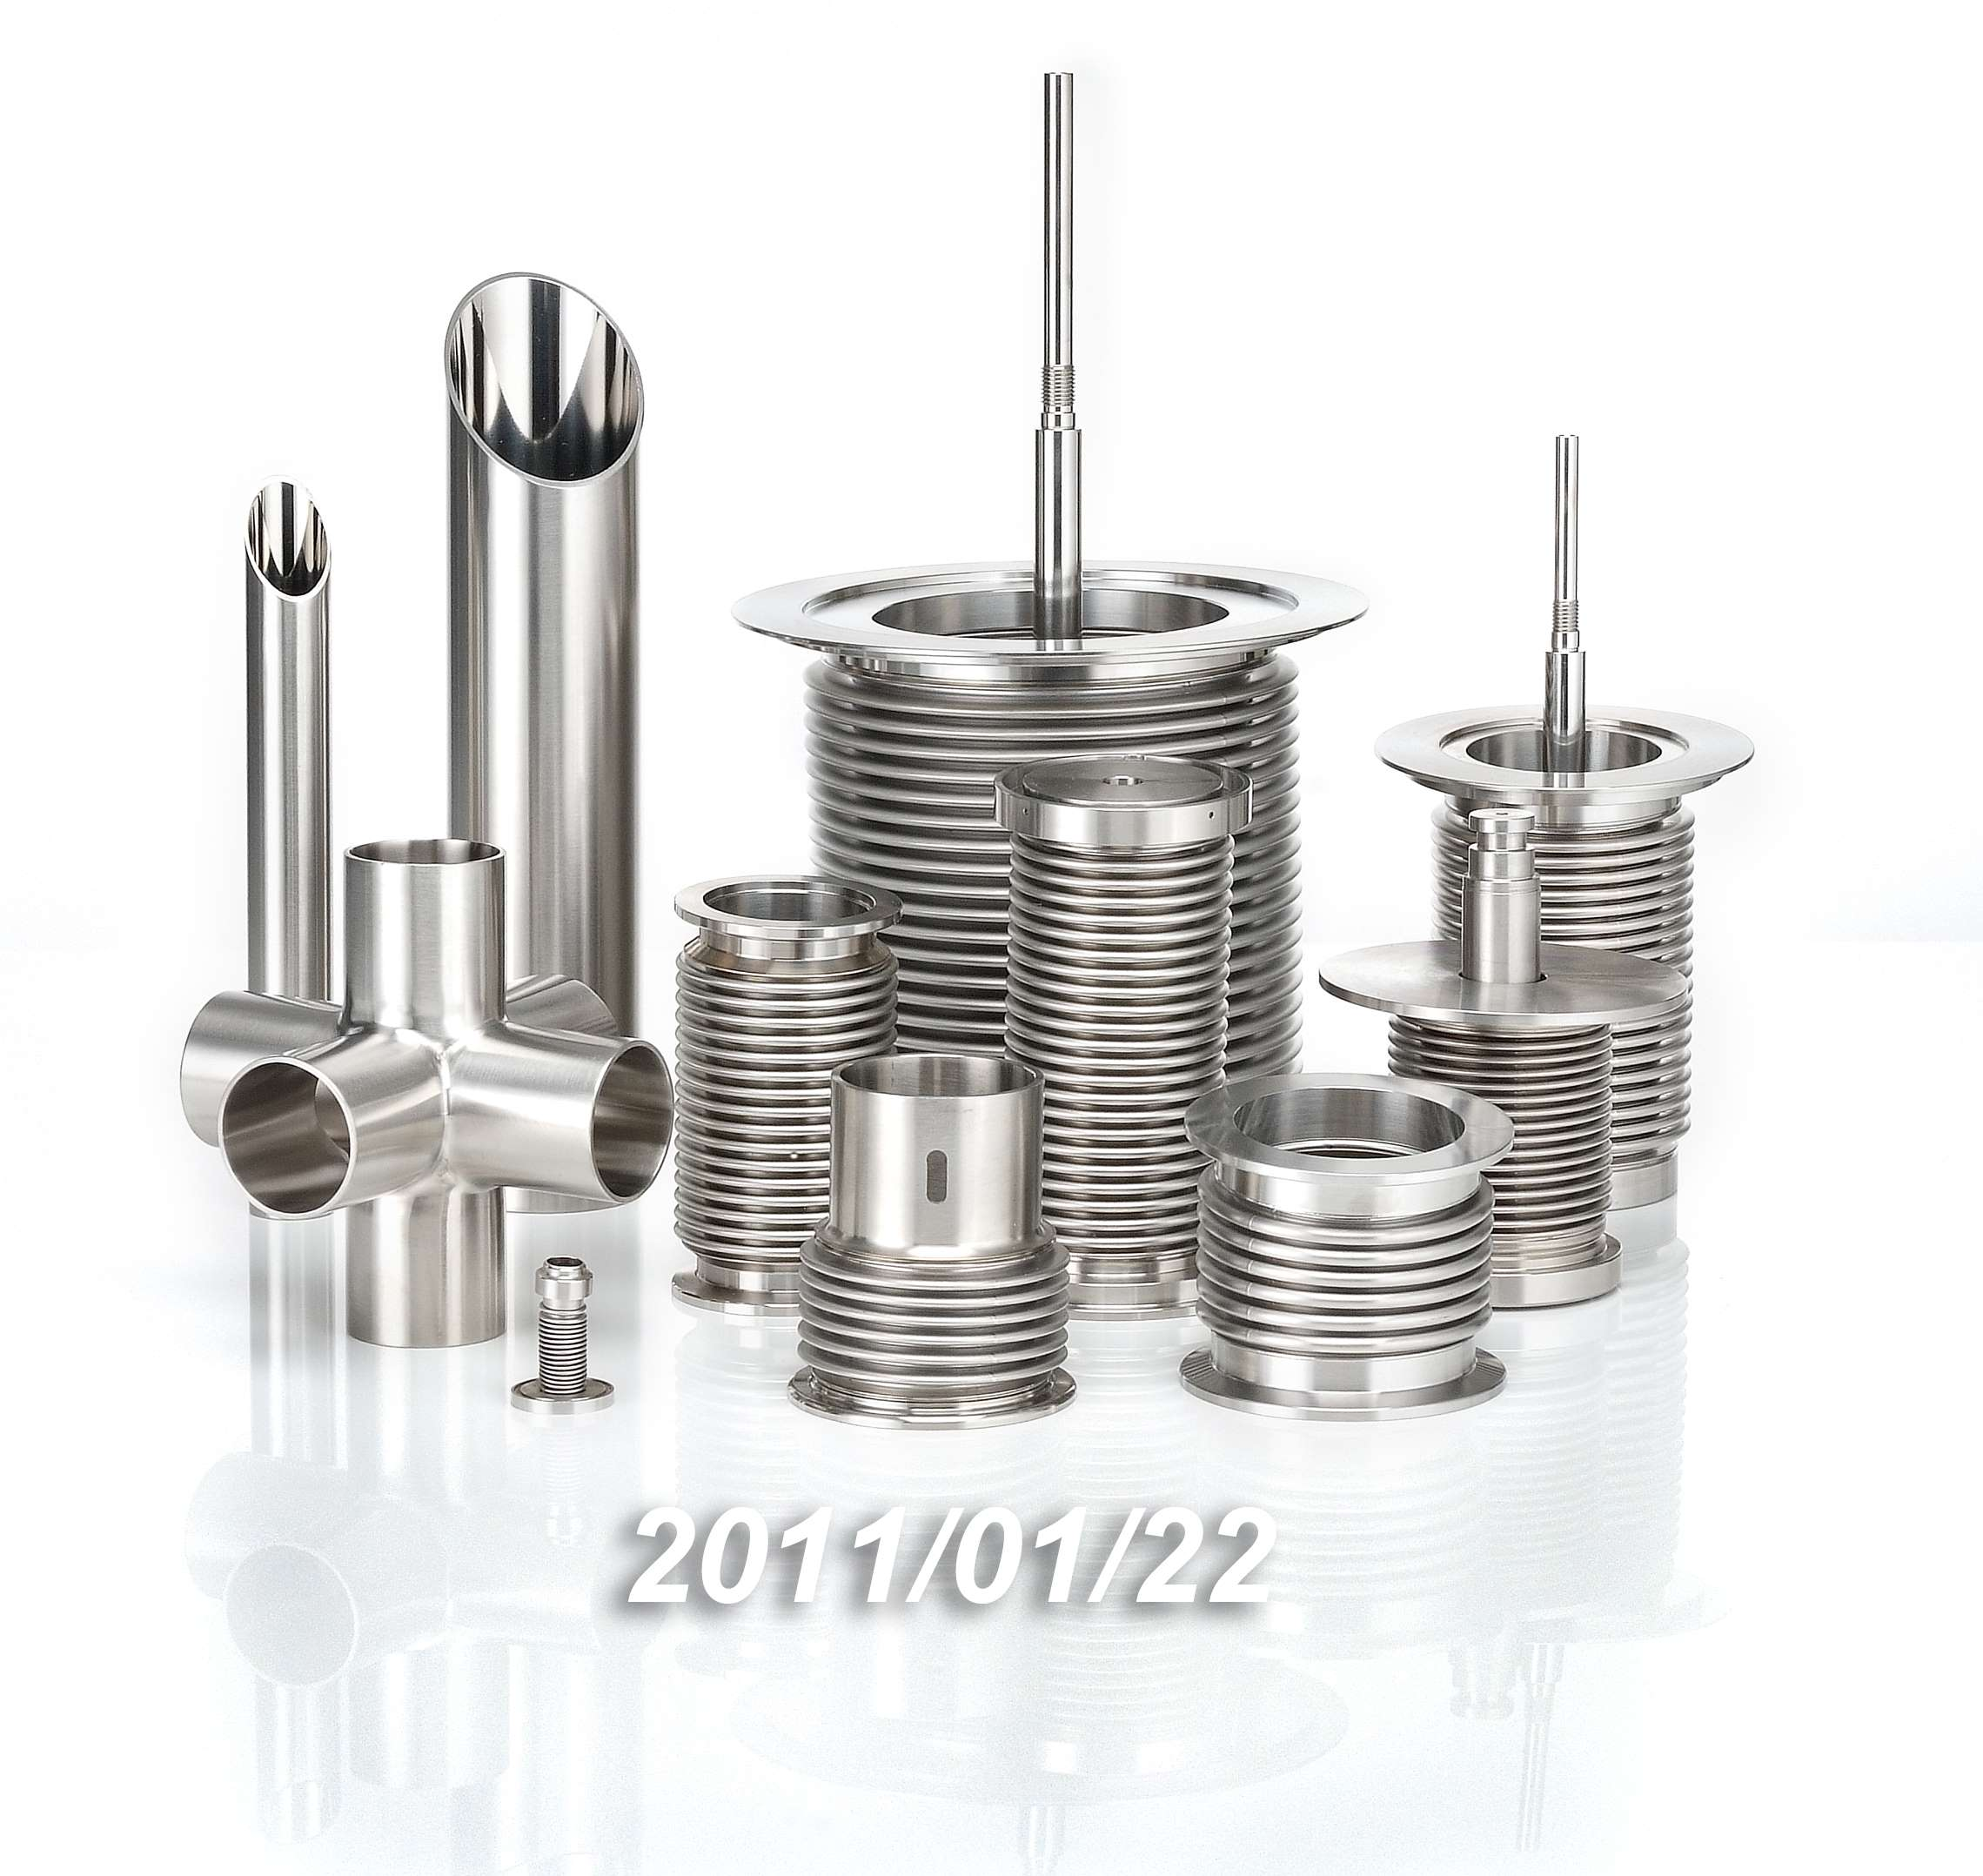 Qualified Quick-Opening Fittings Manufacturer and Supplier